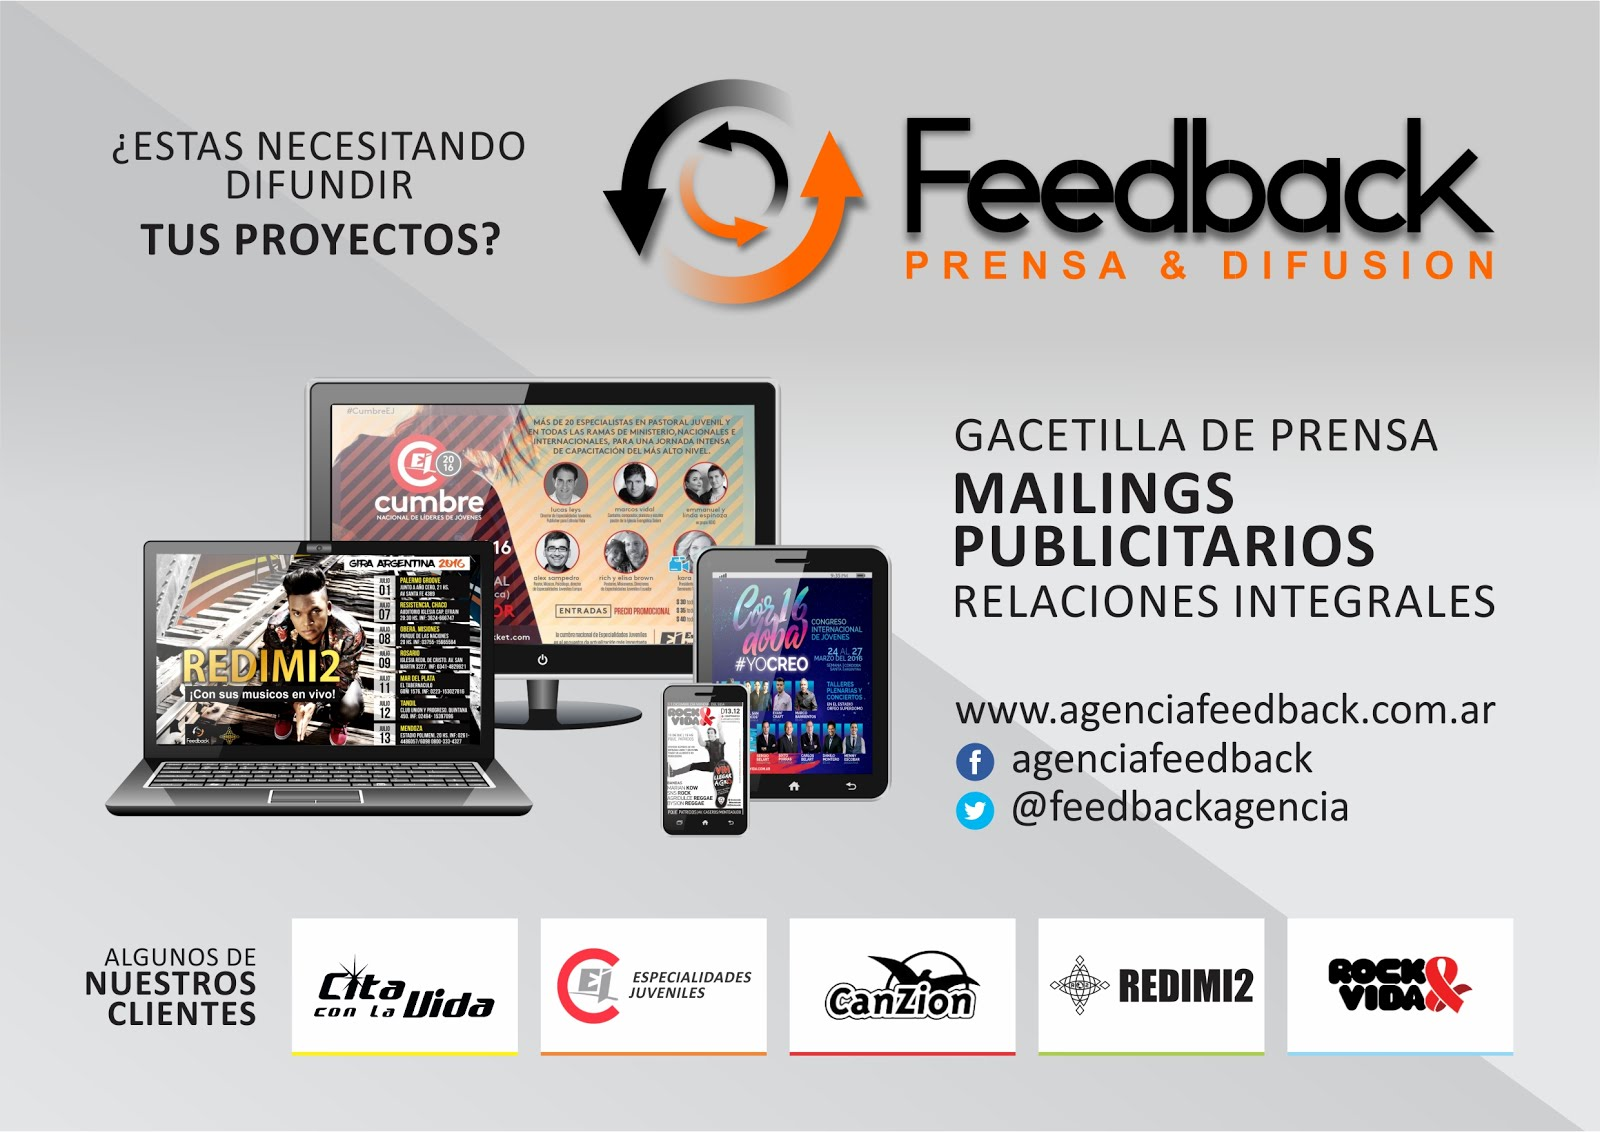 Agencia Feedback